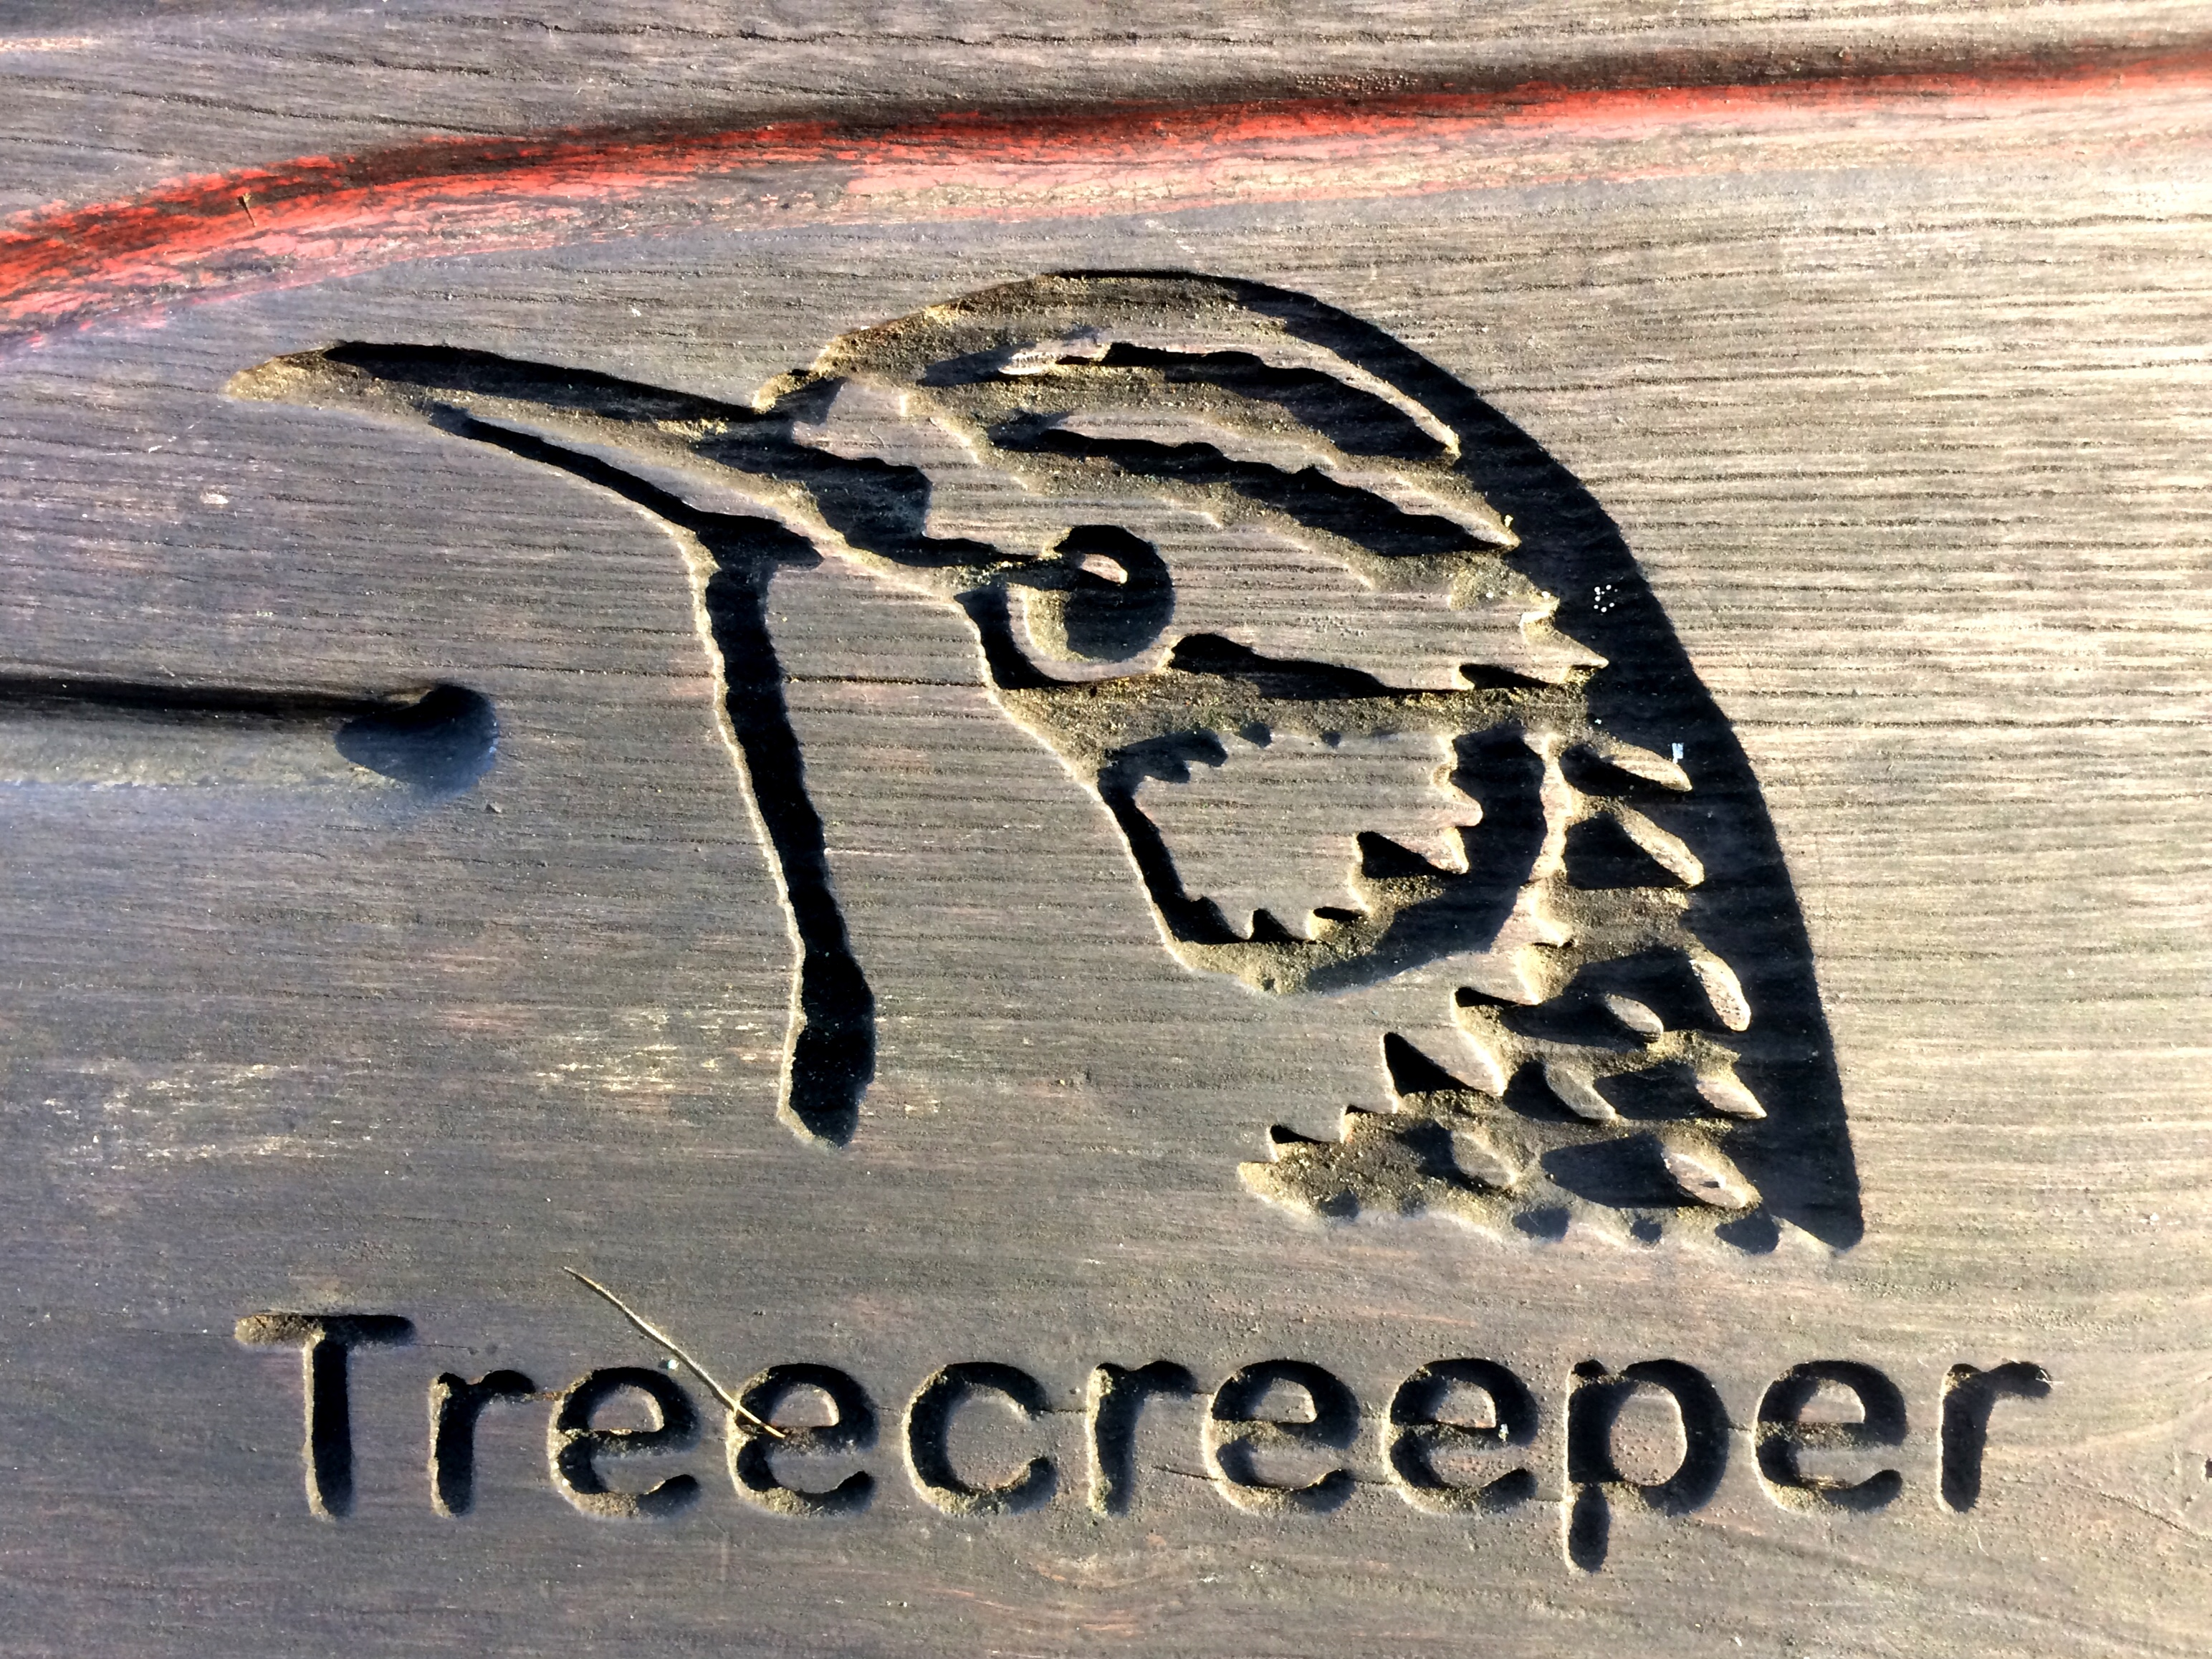 Treecreeper - The Hall of Einar - copyright David Bailey (not the)